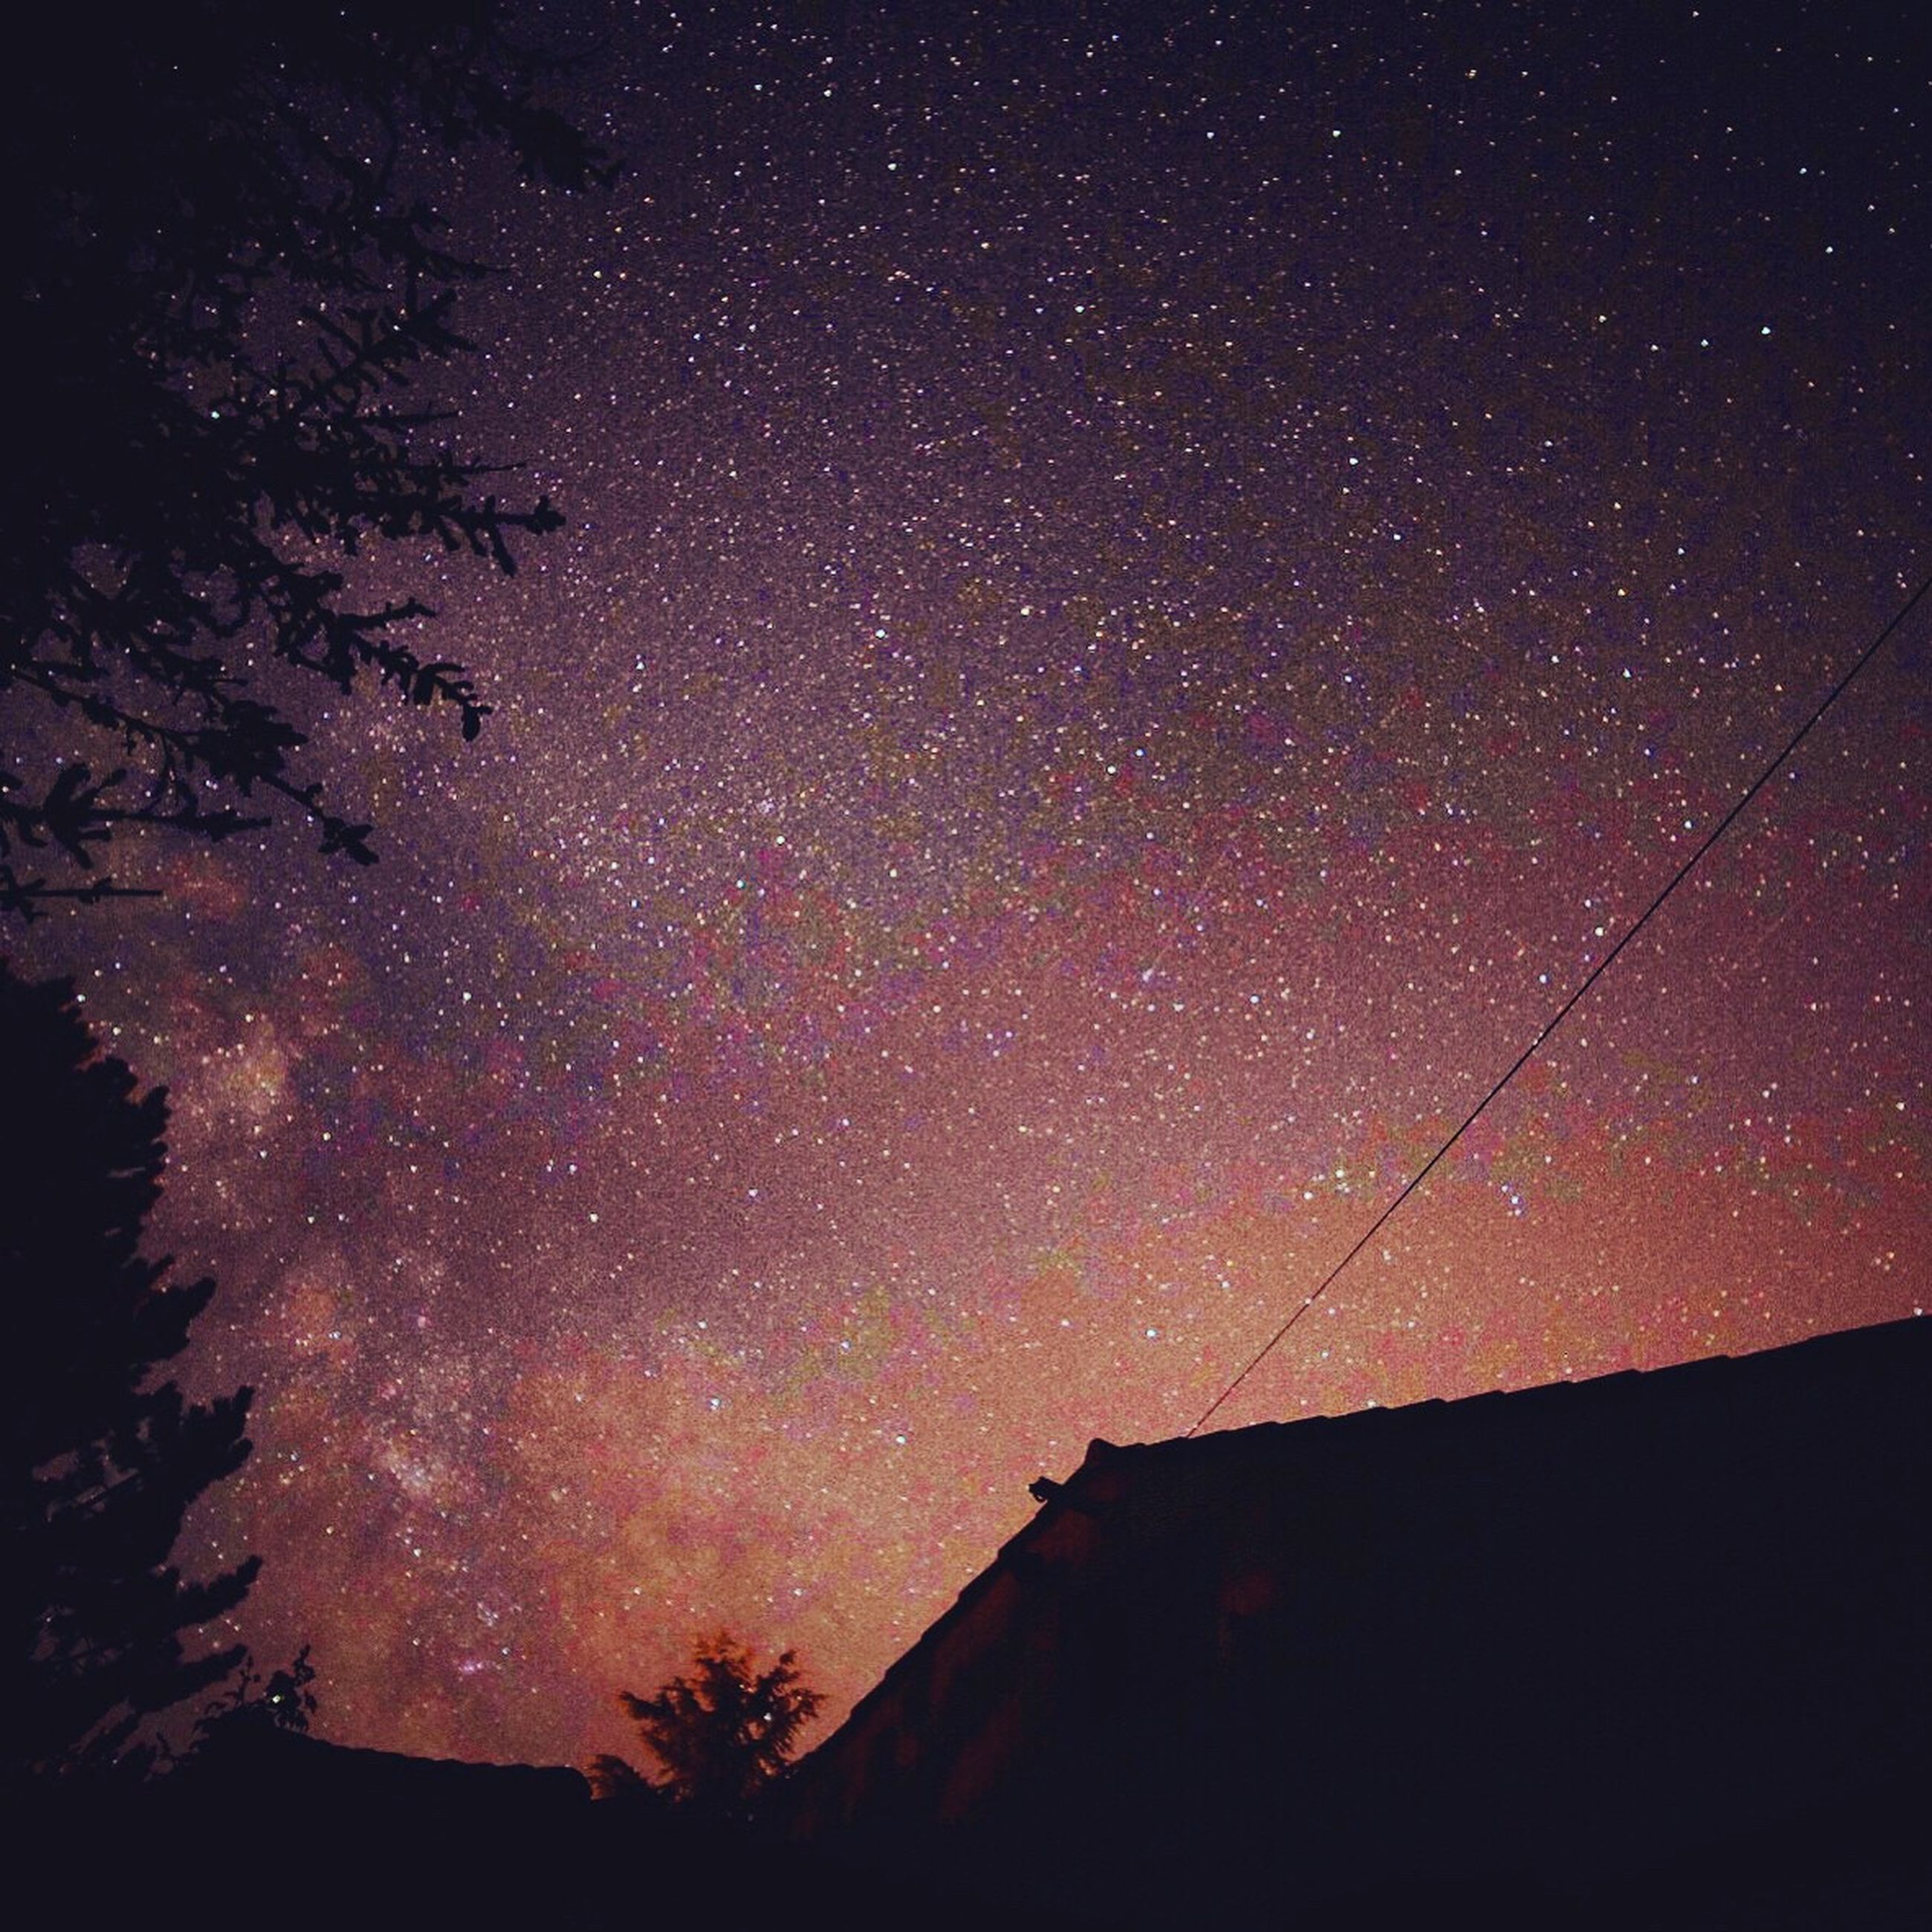 night, star - space, star field, astronomy, low angle view, sky, galaxy, star, scenics, beauty in nature, tranquil scene, space, infinity, nature, tree, tranquility, dark, idyllic, constellation, majestic, no people, outdoors, illuminated, landscape, weather, aurora borealis, star trail, remote, non-urban scene